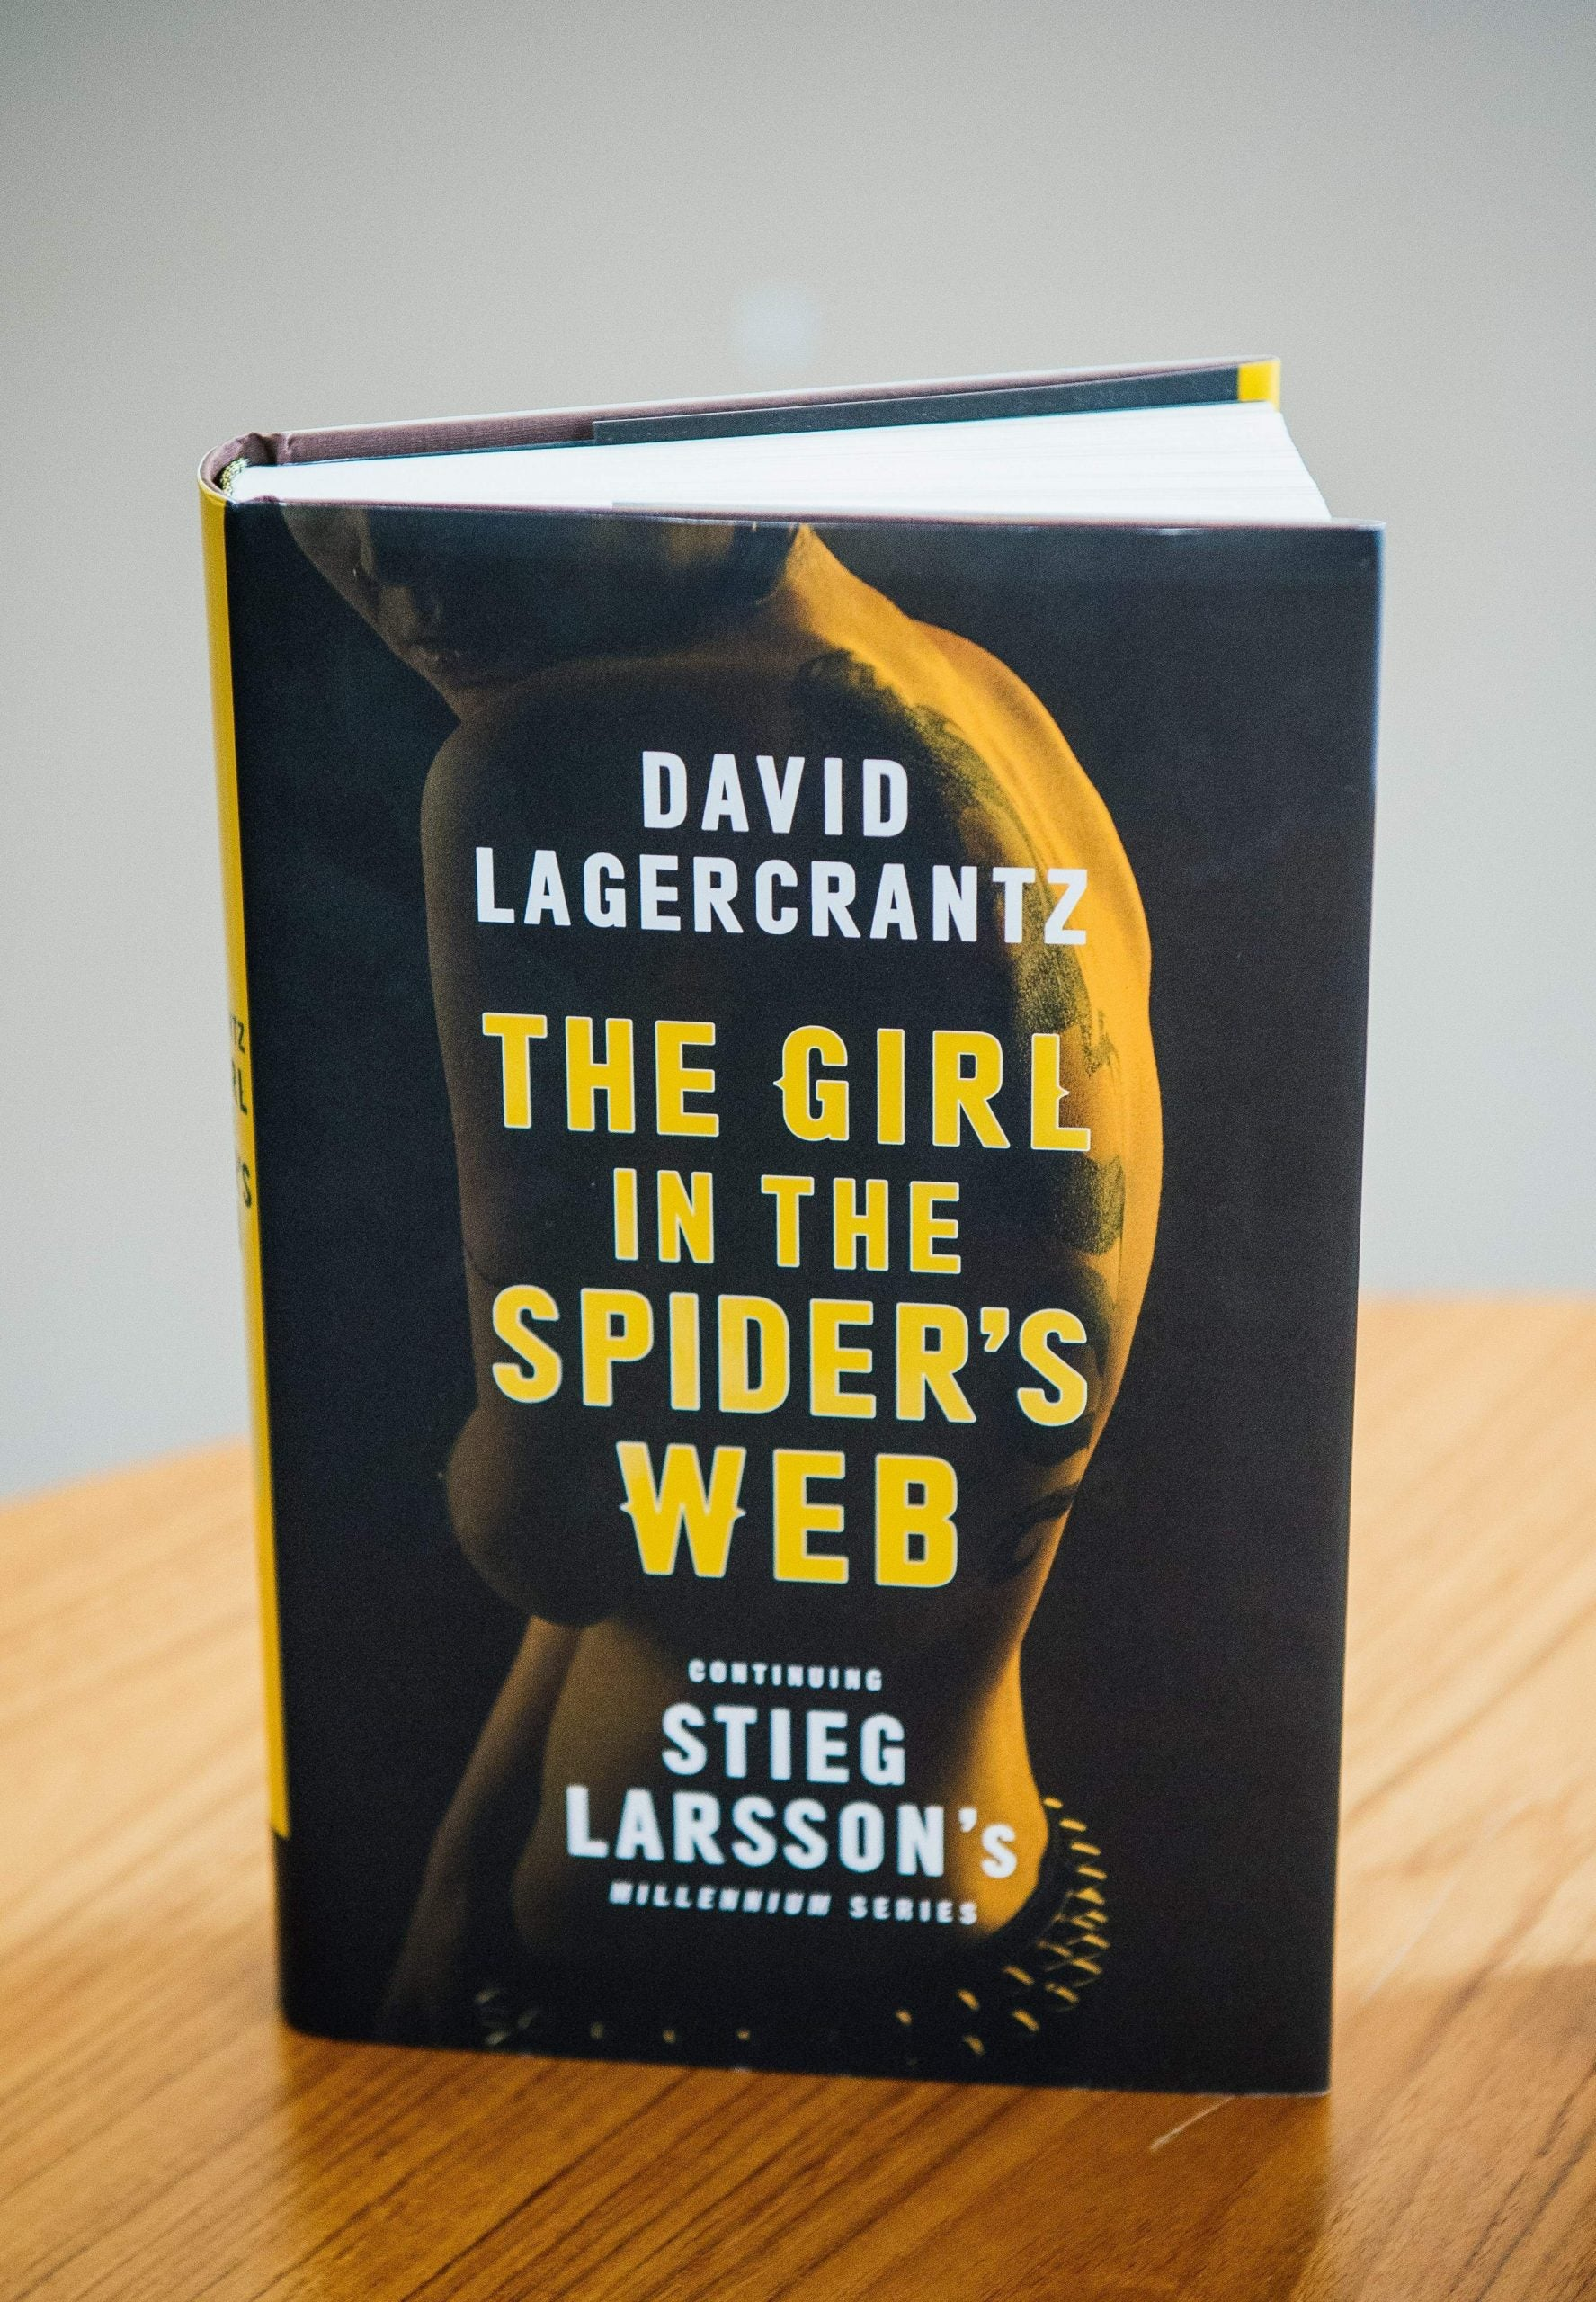 Throwing up the dead: the novelists mimicking Ian Fleming and Stieg Larsson